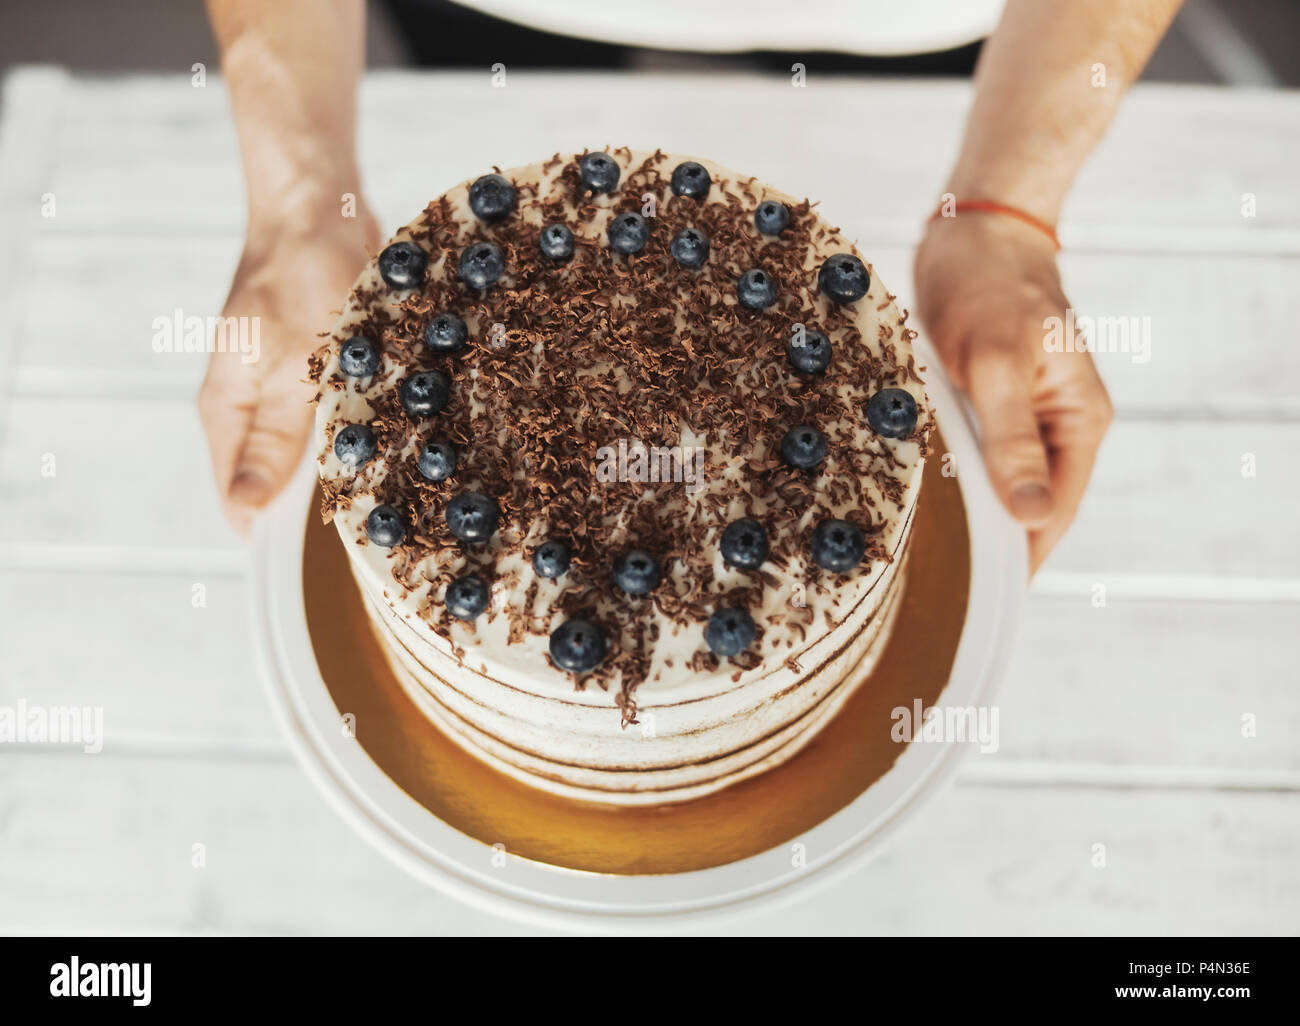 Young Attractive Man Decorating Cake With Chocolate And Berries